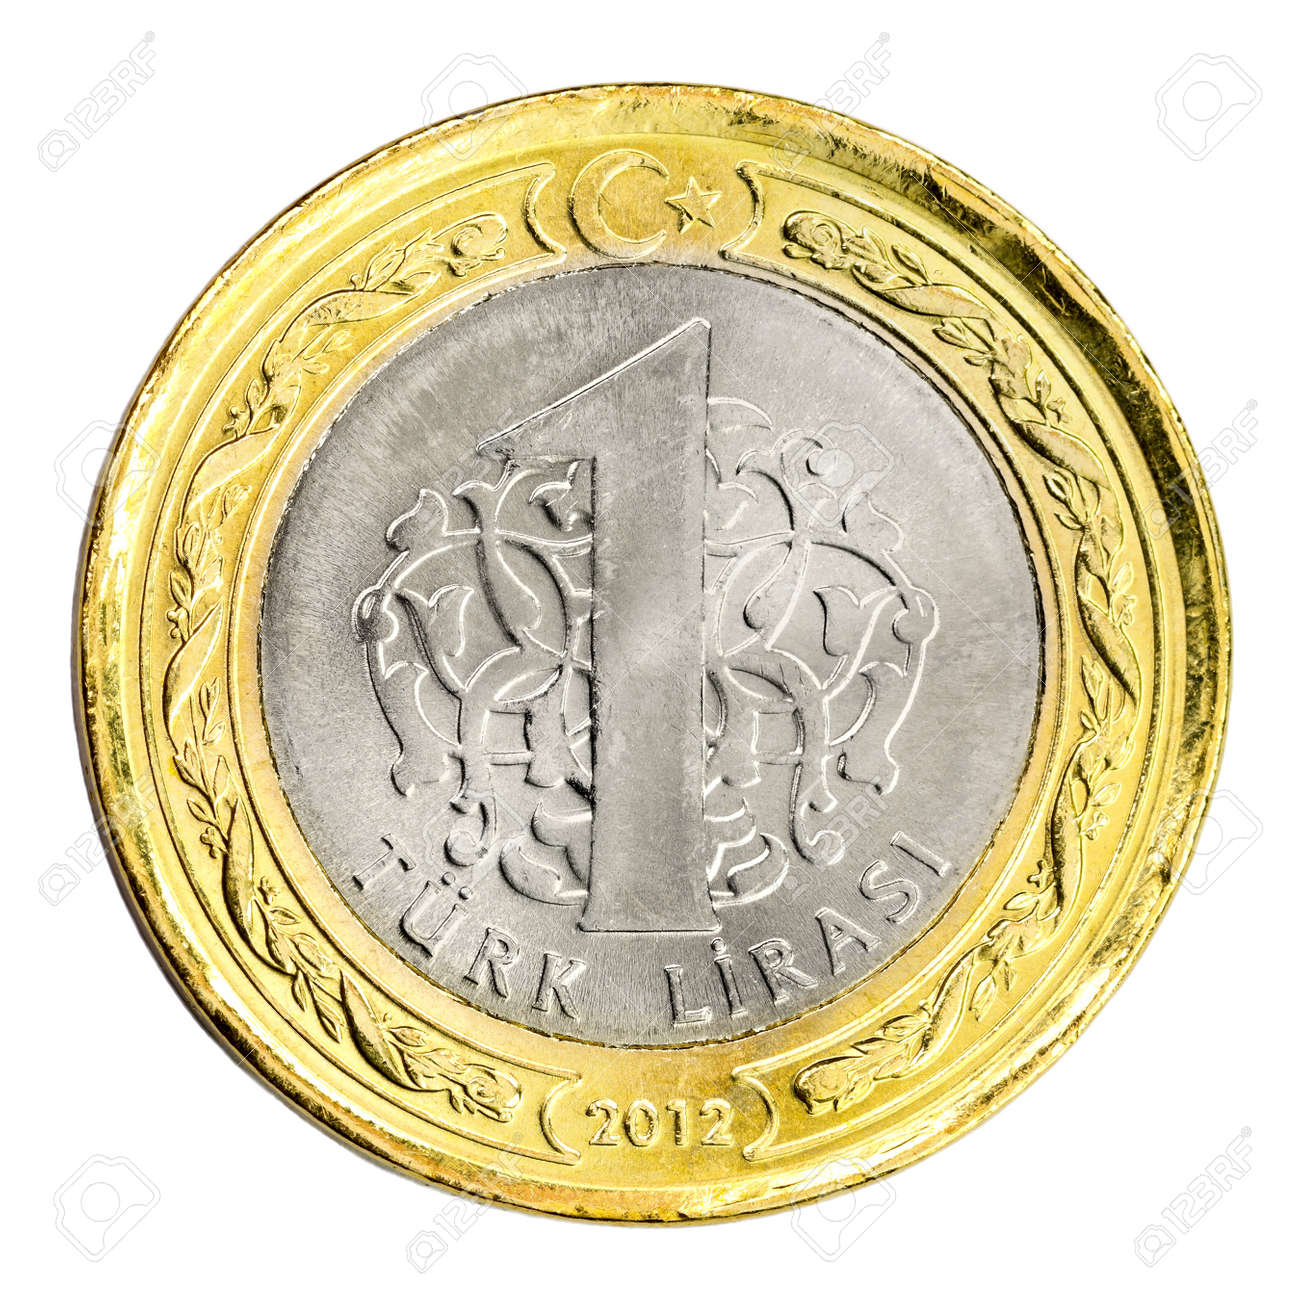 One Turkish Lira coin (front) Isolated on white background - 16989396